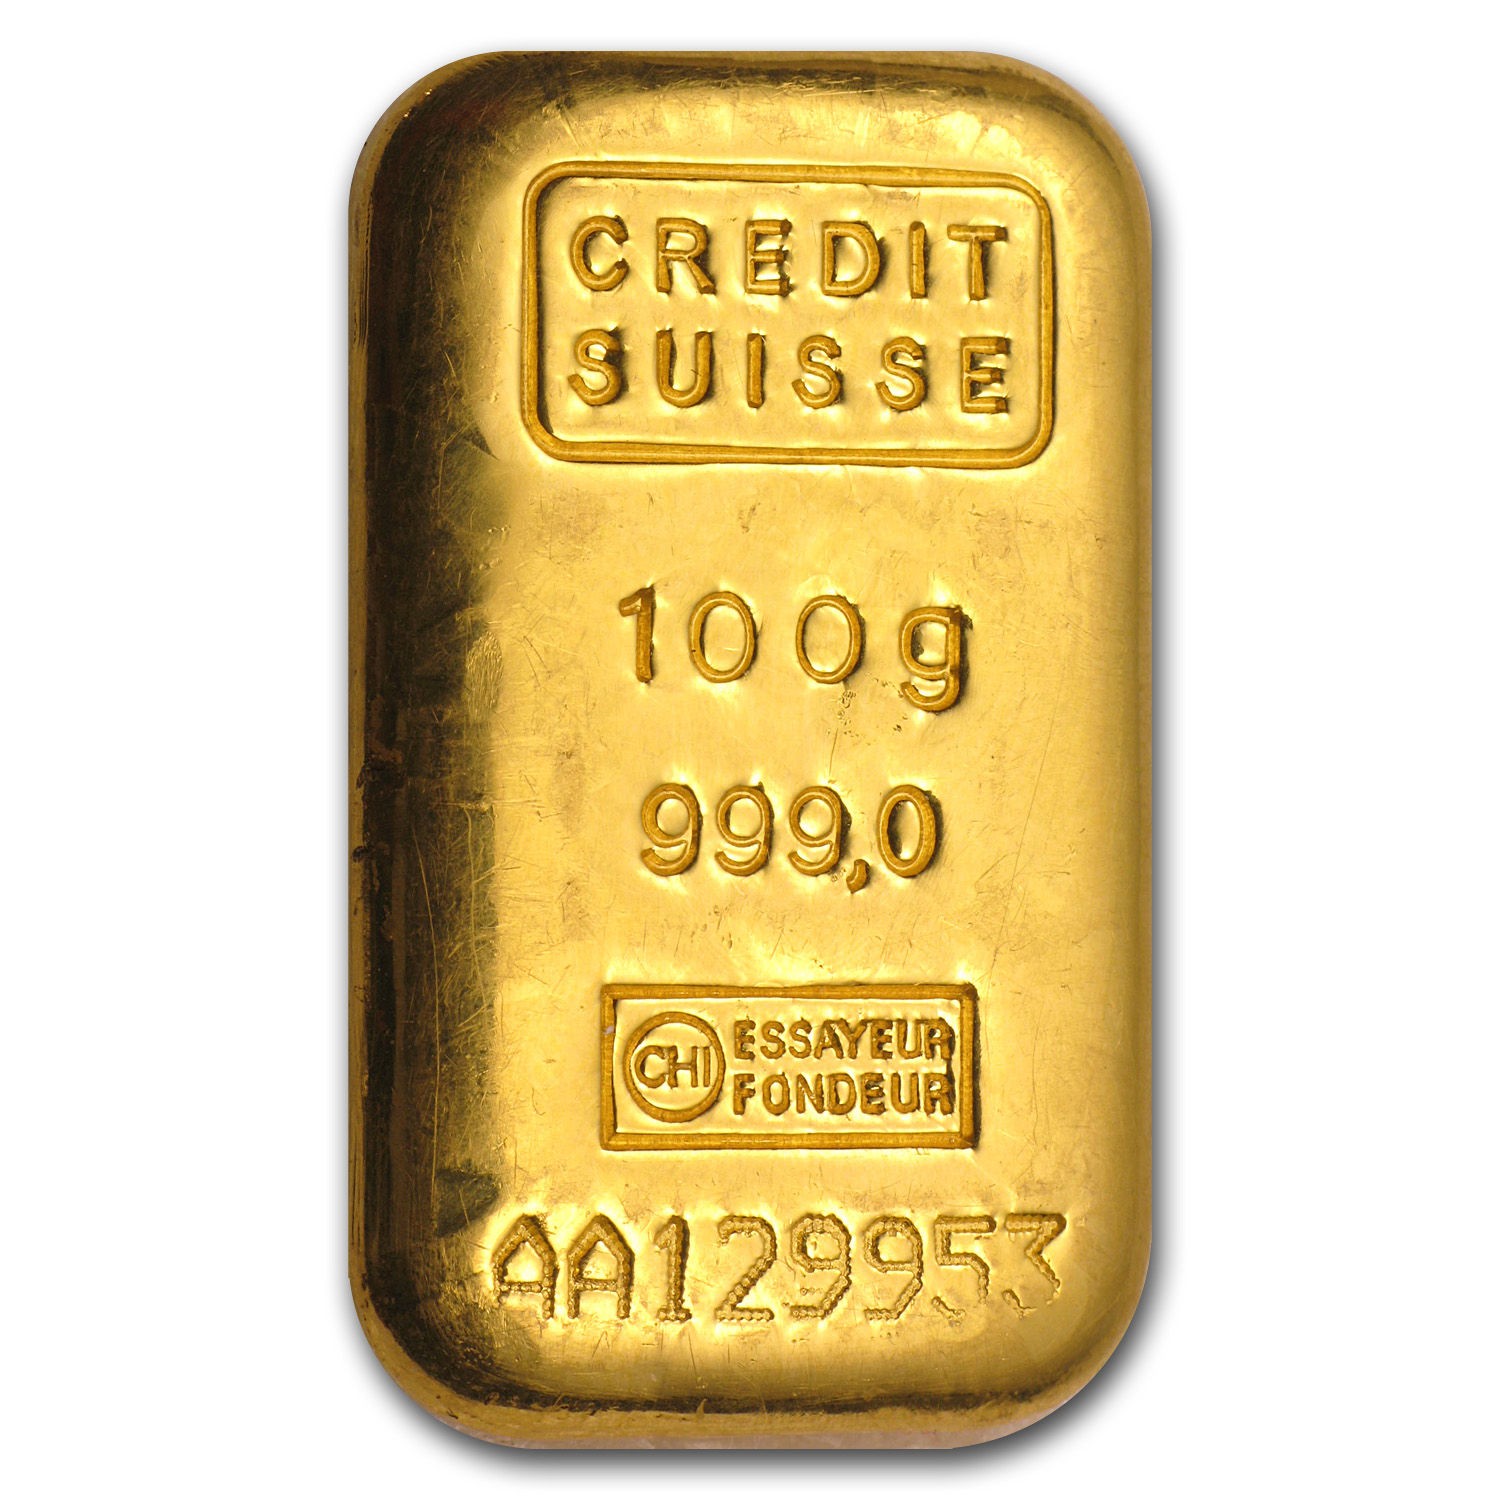 100 gram Gold Bar - Credit Suisse (Loaf style)